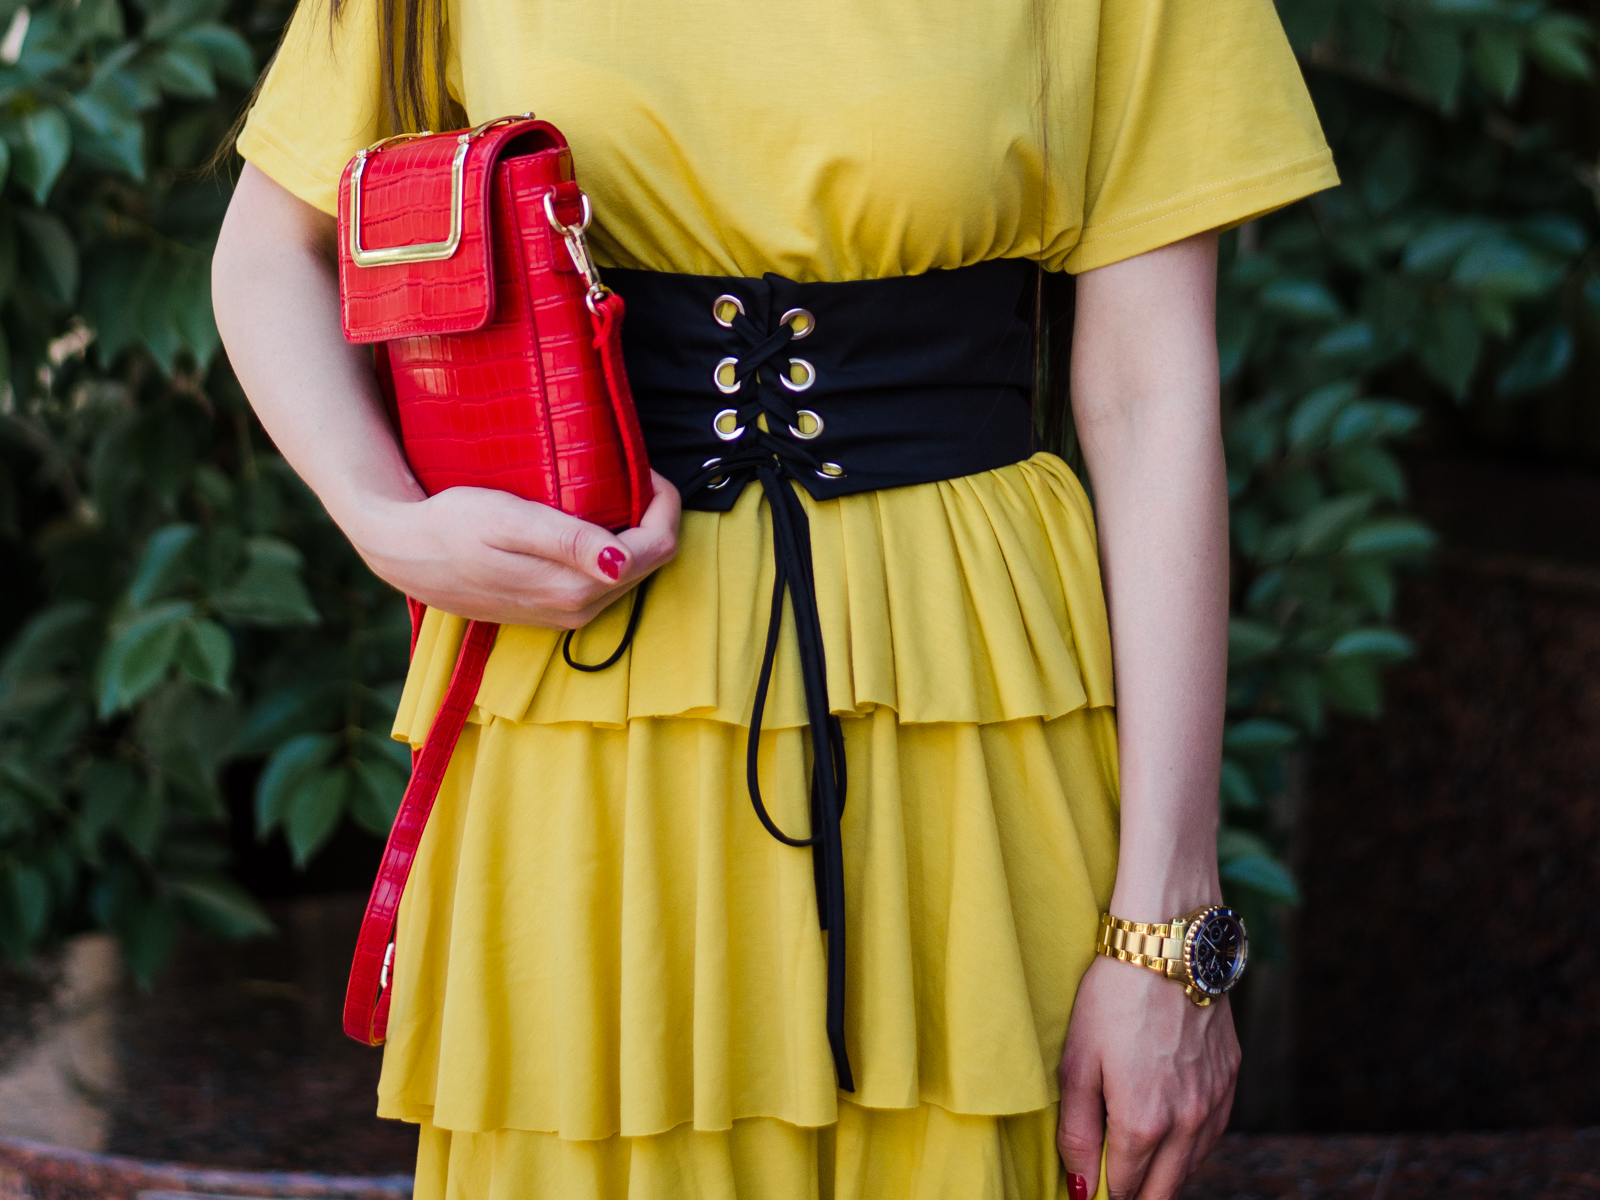 fashion blogger diyorasnotes diyora beta yellow dress summer dress ruffle dress midi corset straw hat asos summer look outfitoftheday